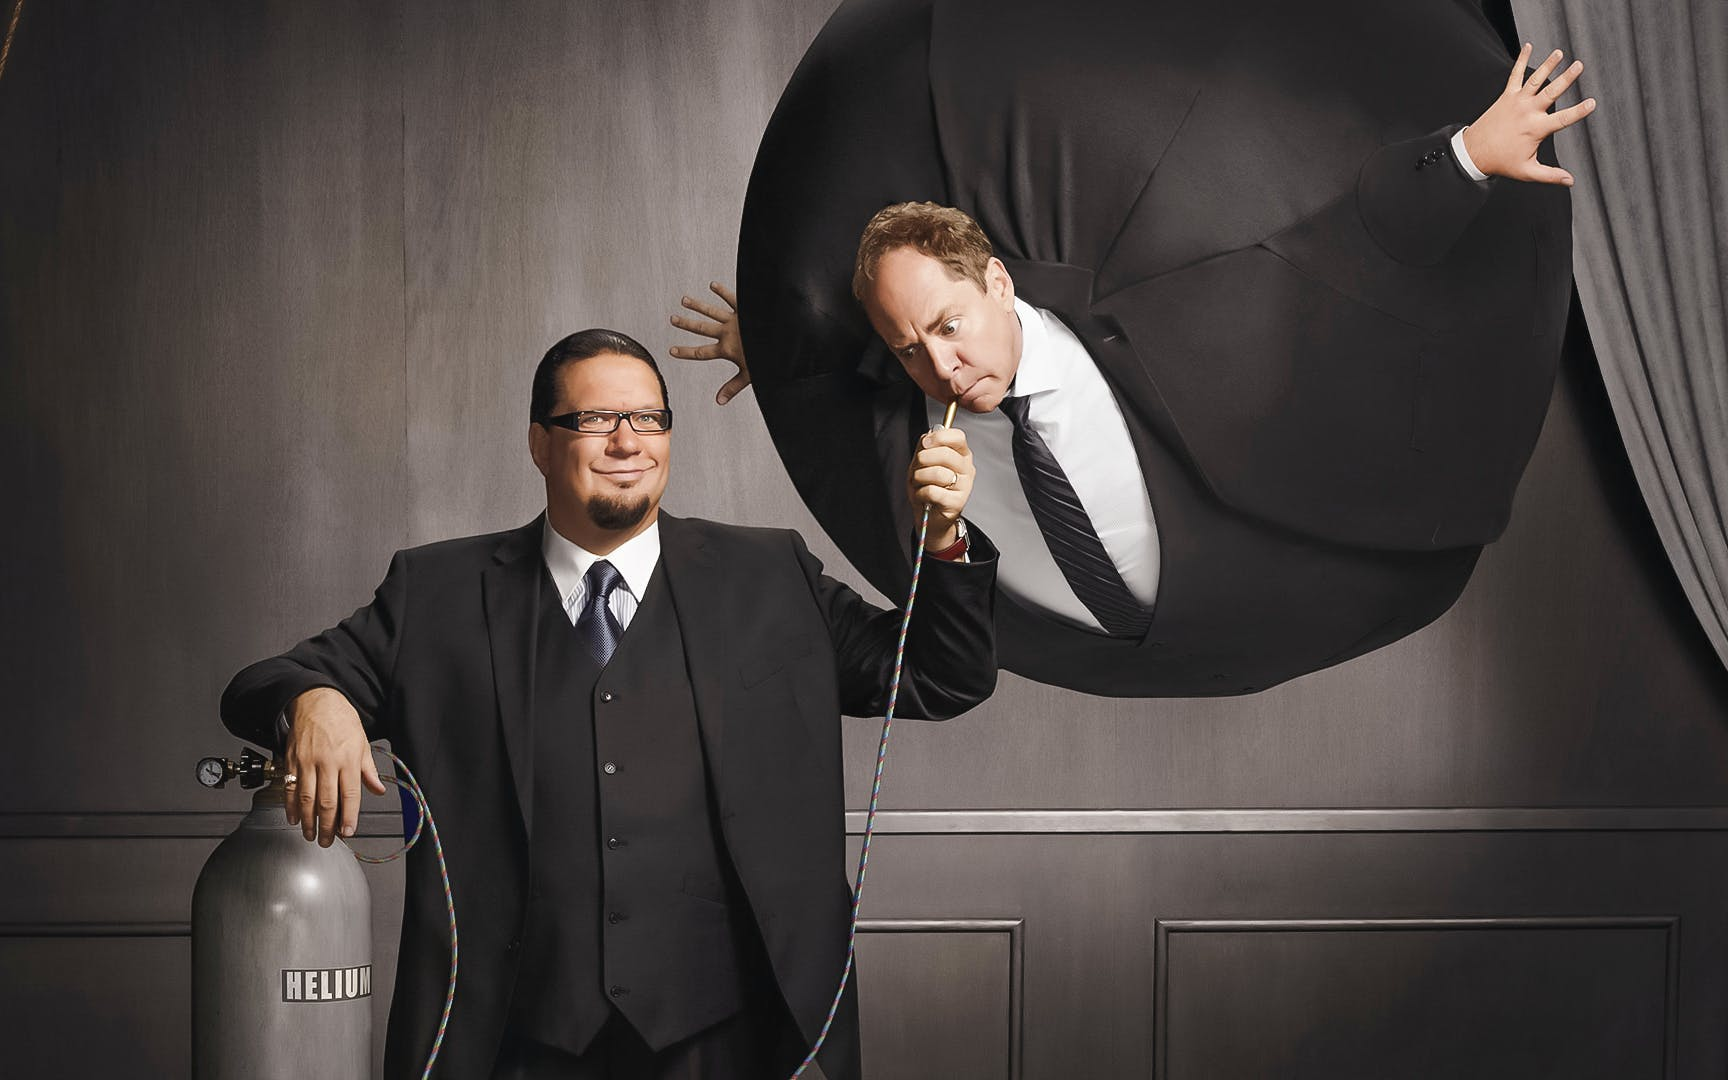 Las Vegas Shows - Penn and Teller